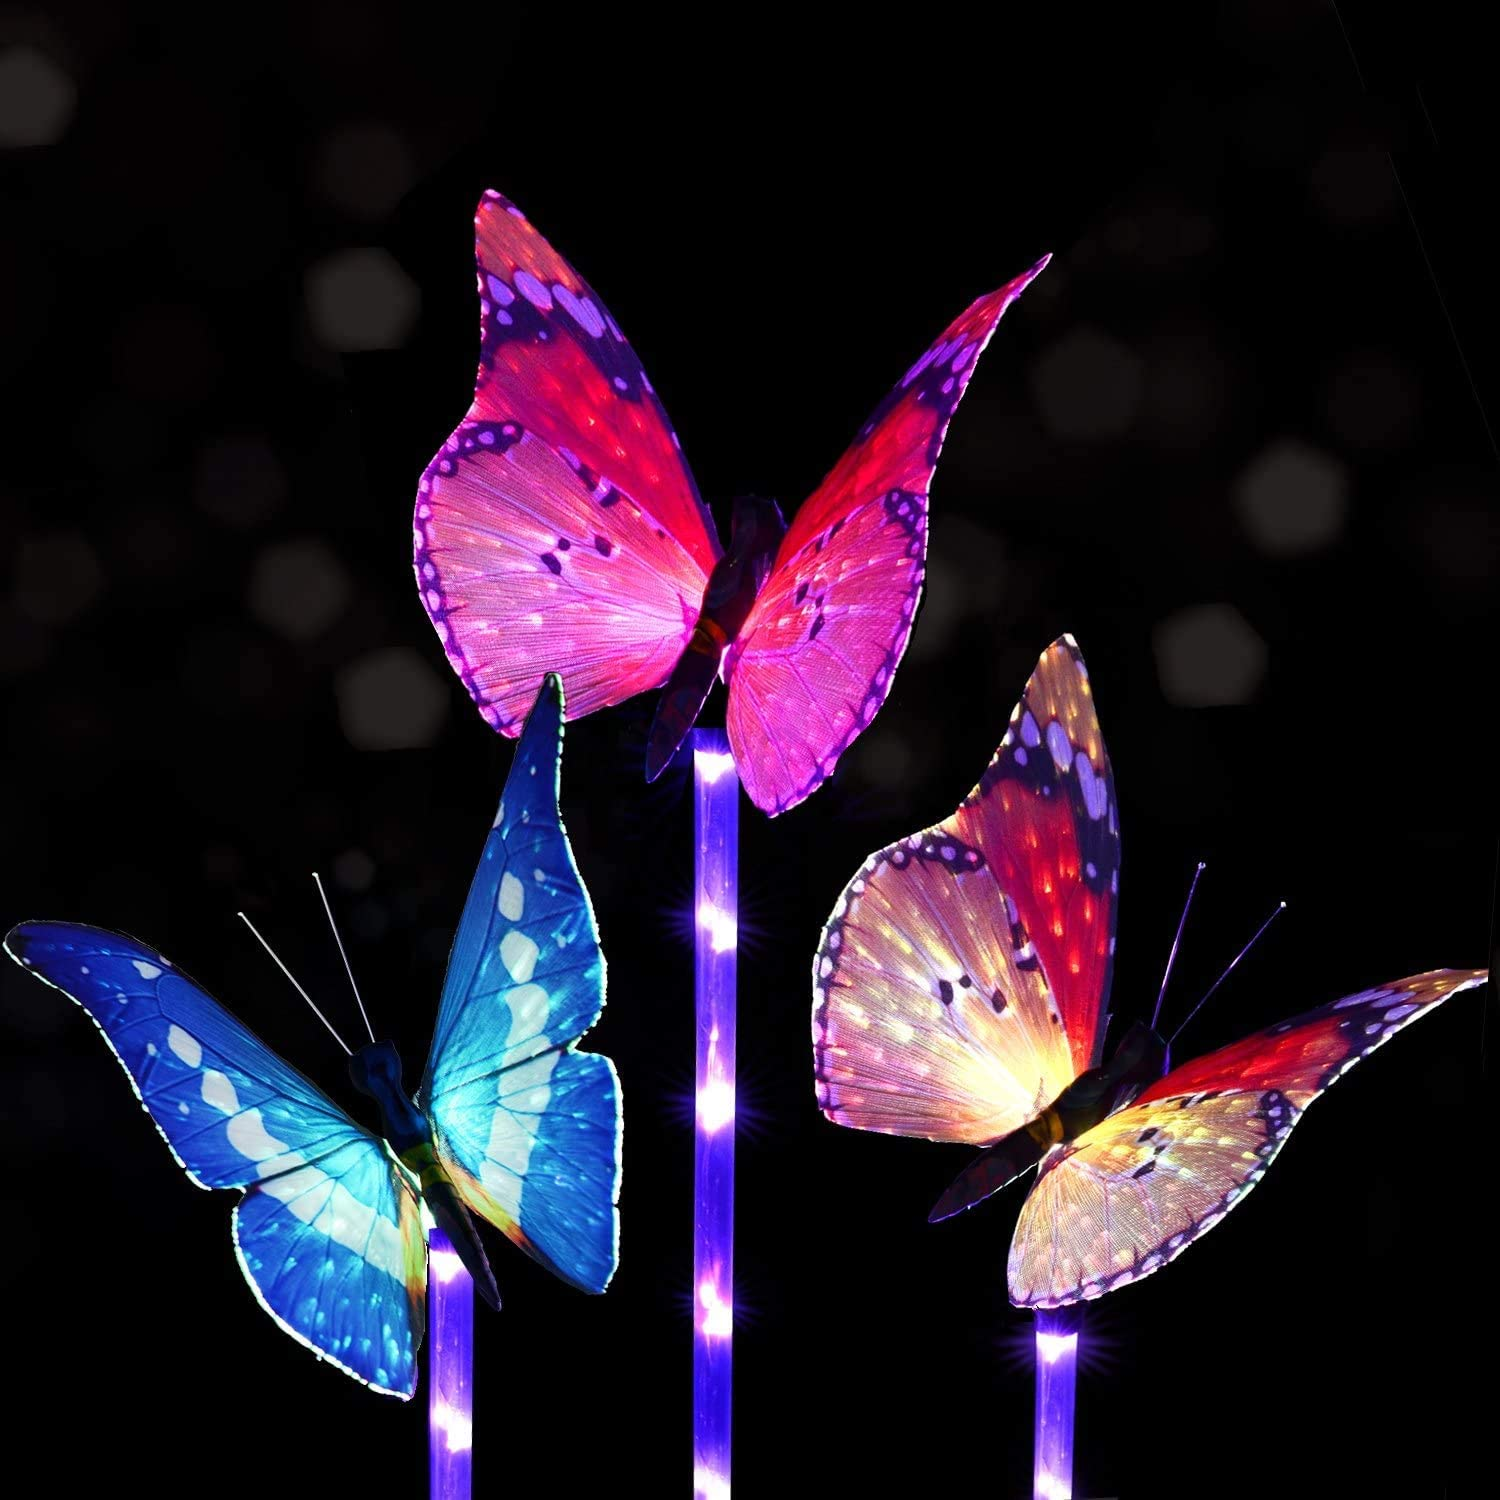 Outdoor Garden Solar Lights - 3 Pack Fiber Optic Butterfly Solar Powered Lights, Color Changing LED Solar Stake Lights, with a Purple LED Light Stake for Garden, Patio, Backyard